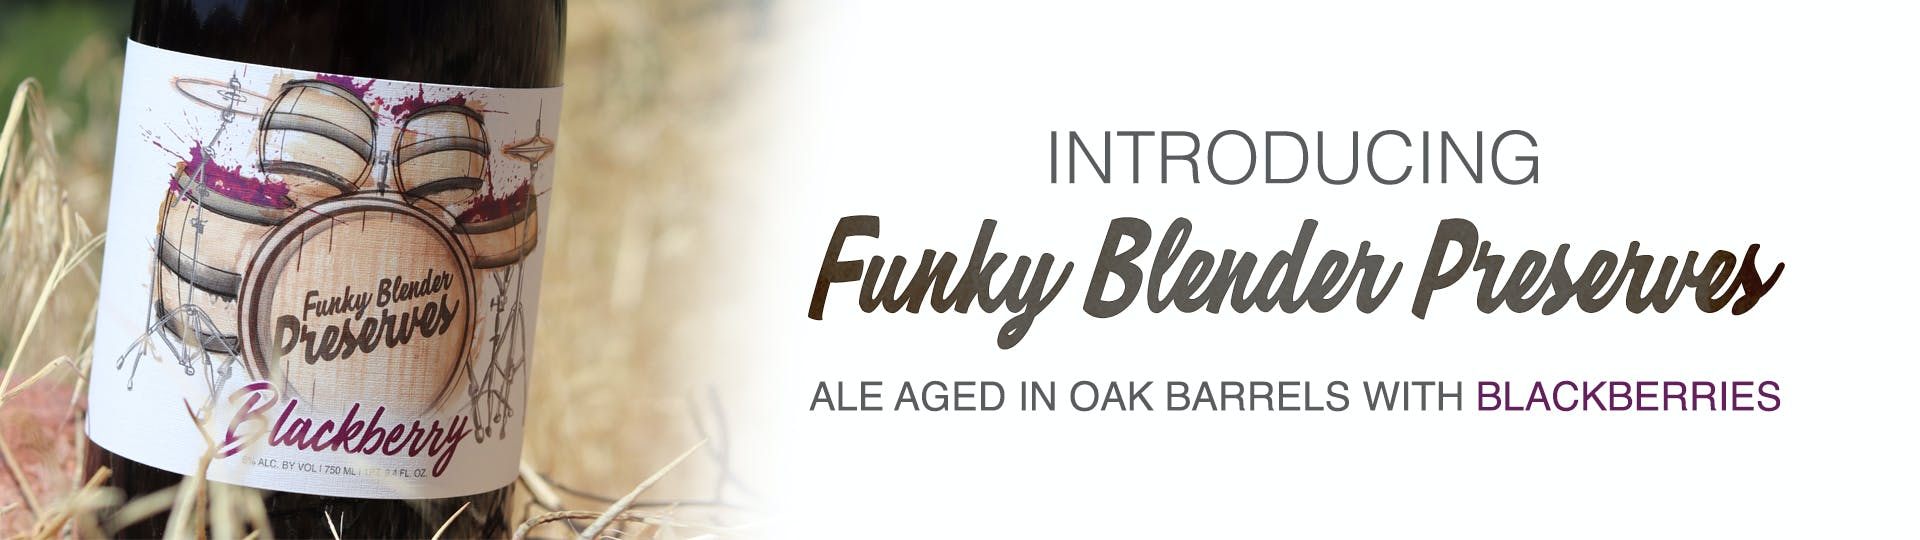 Funky Blender Label Reveal_Header Image for Blog